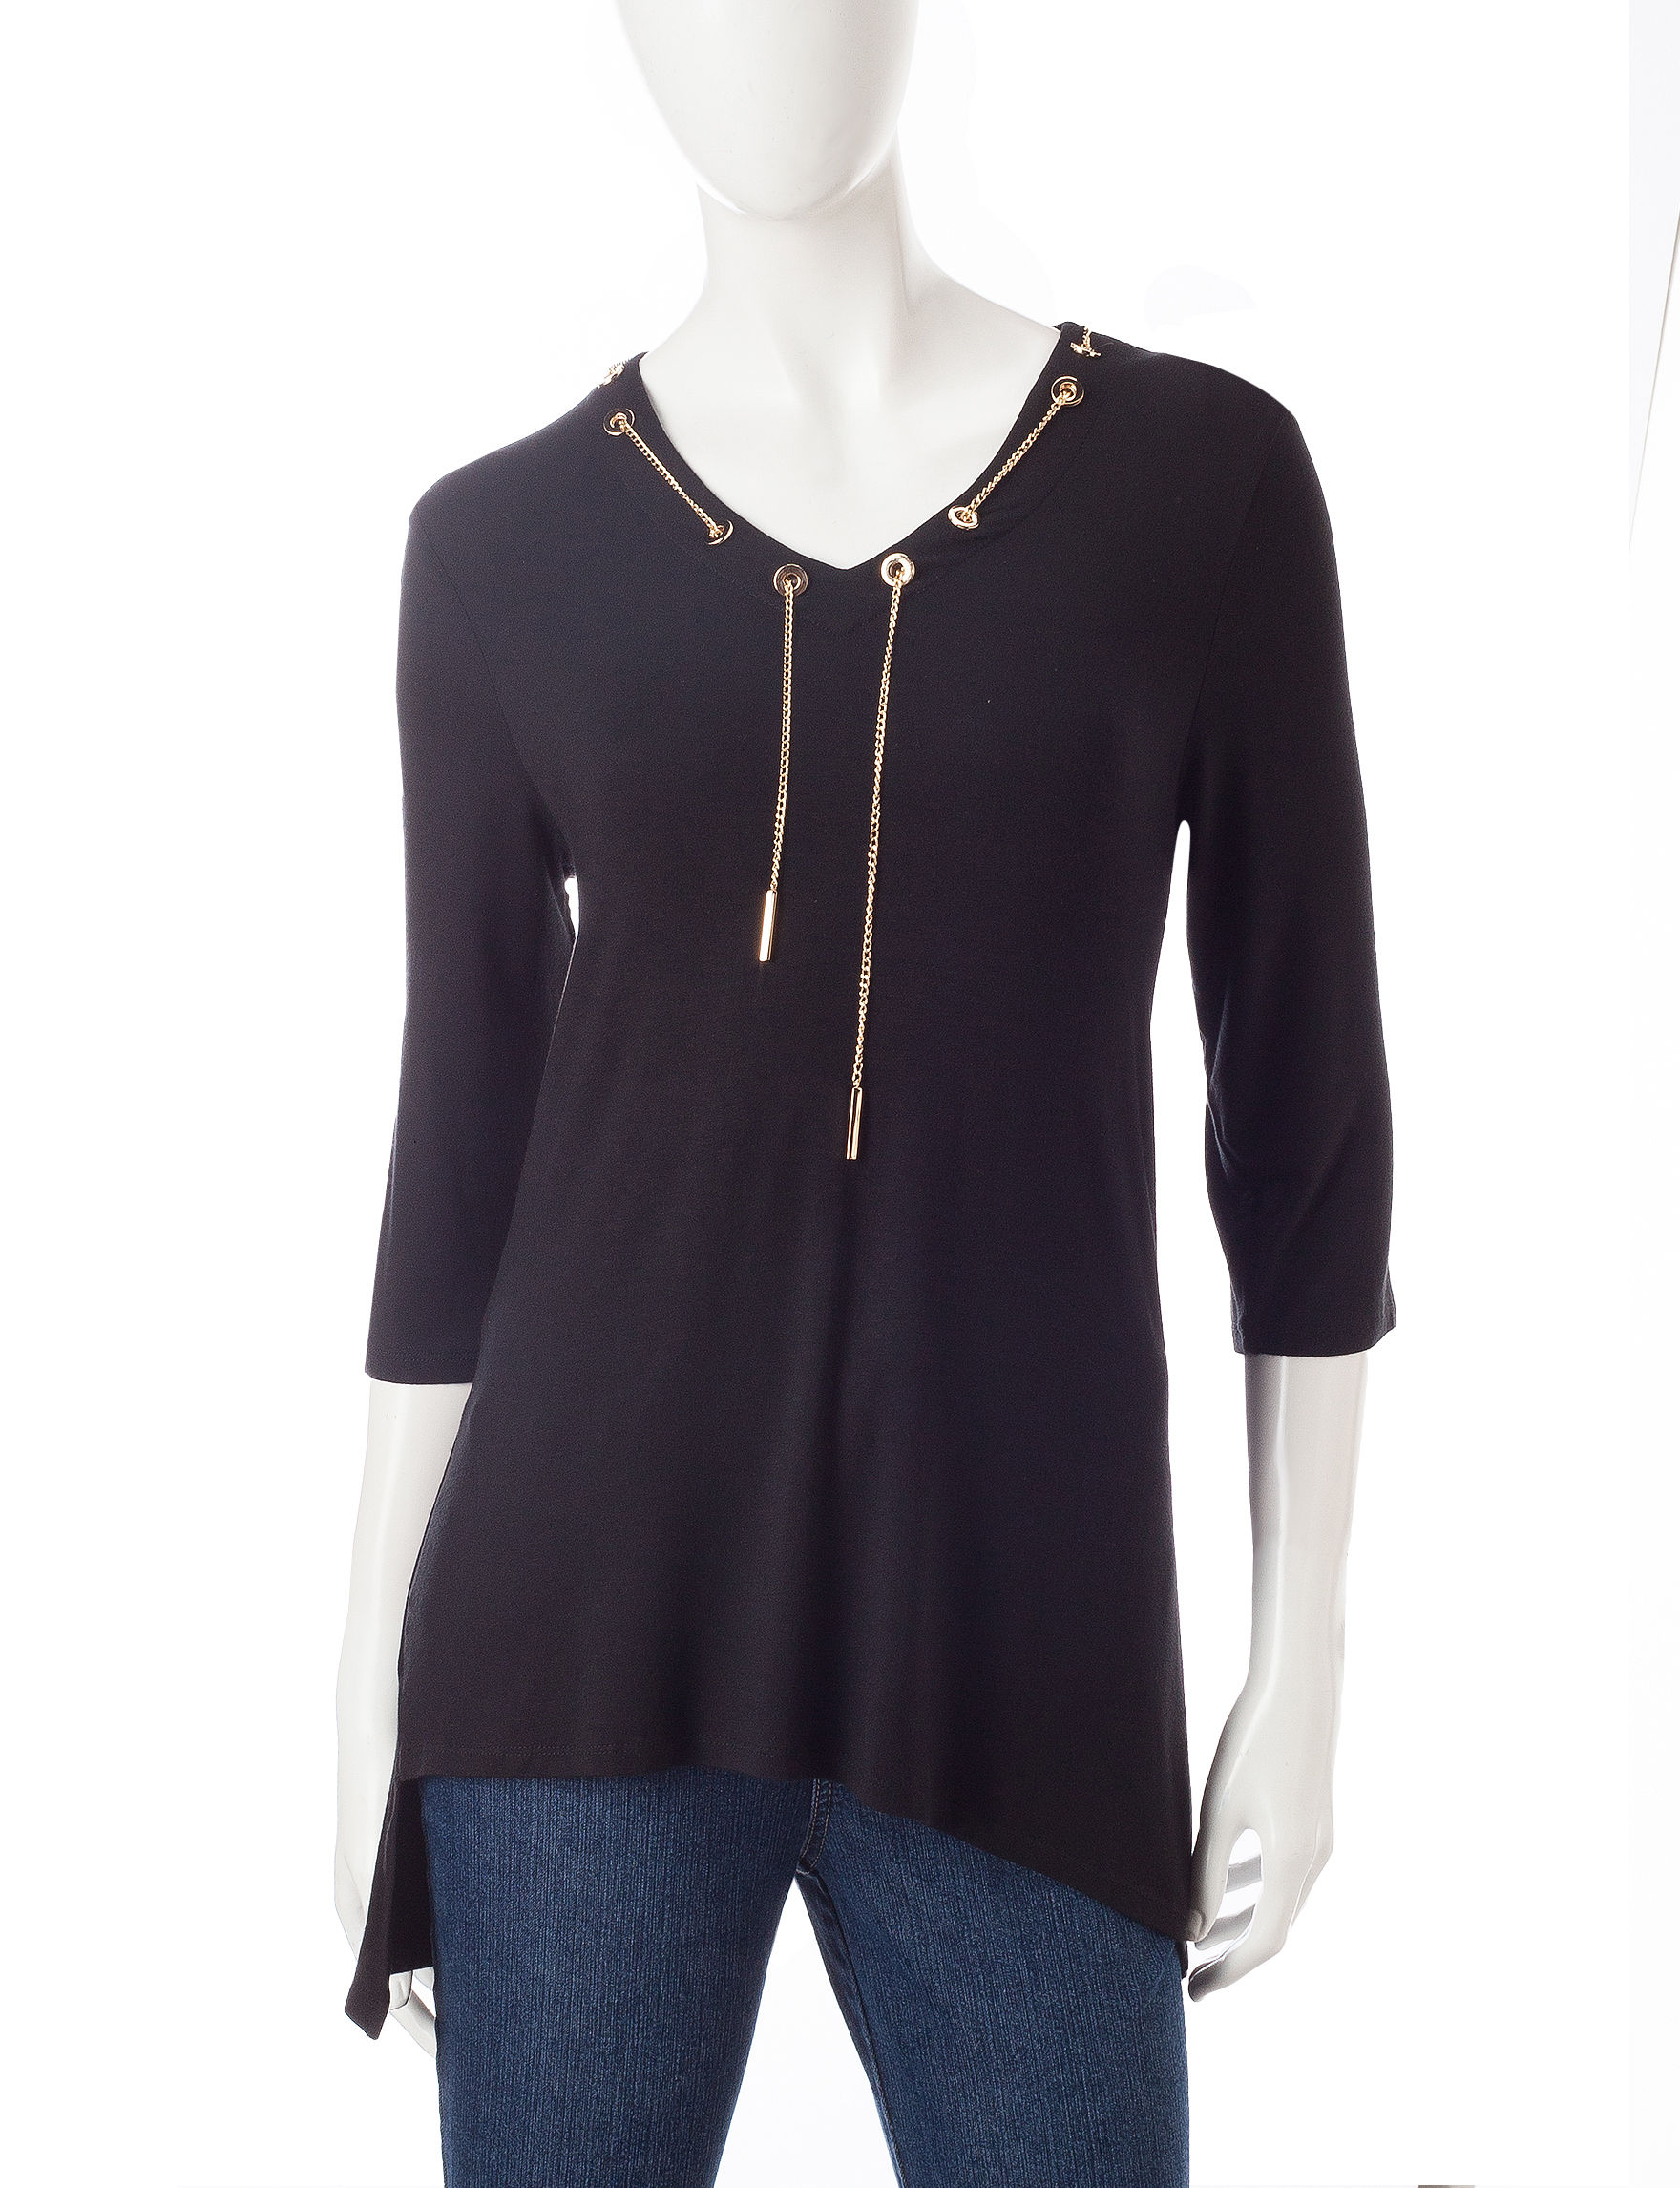 Onque Casuals Black Shirts & Blouses